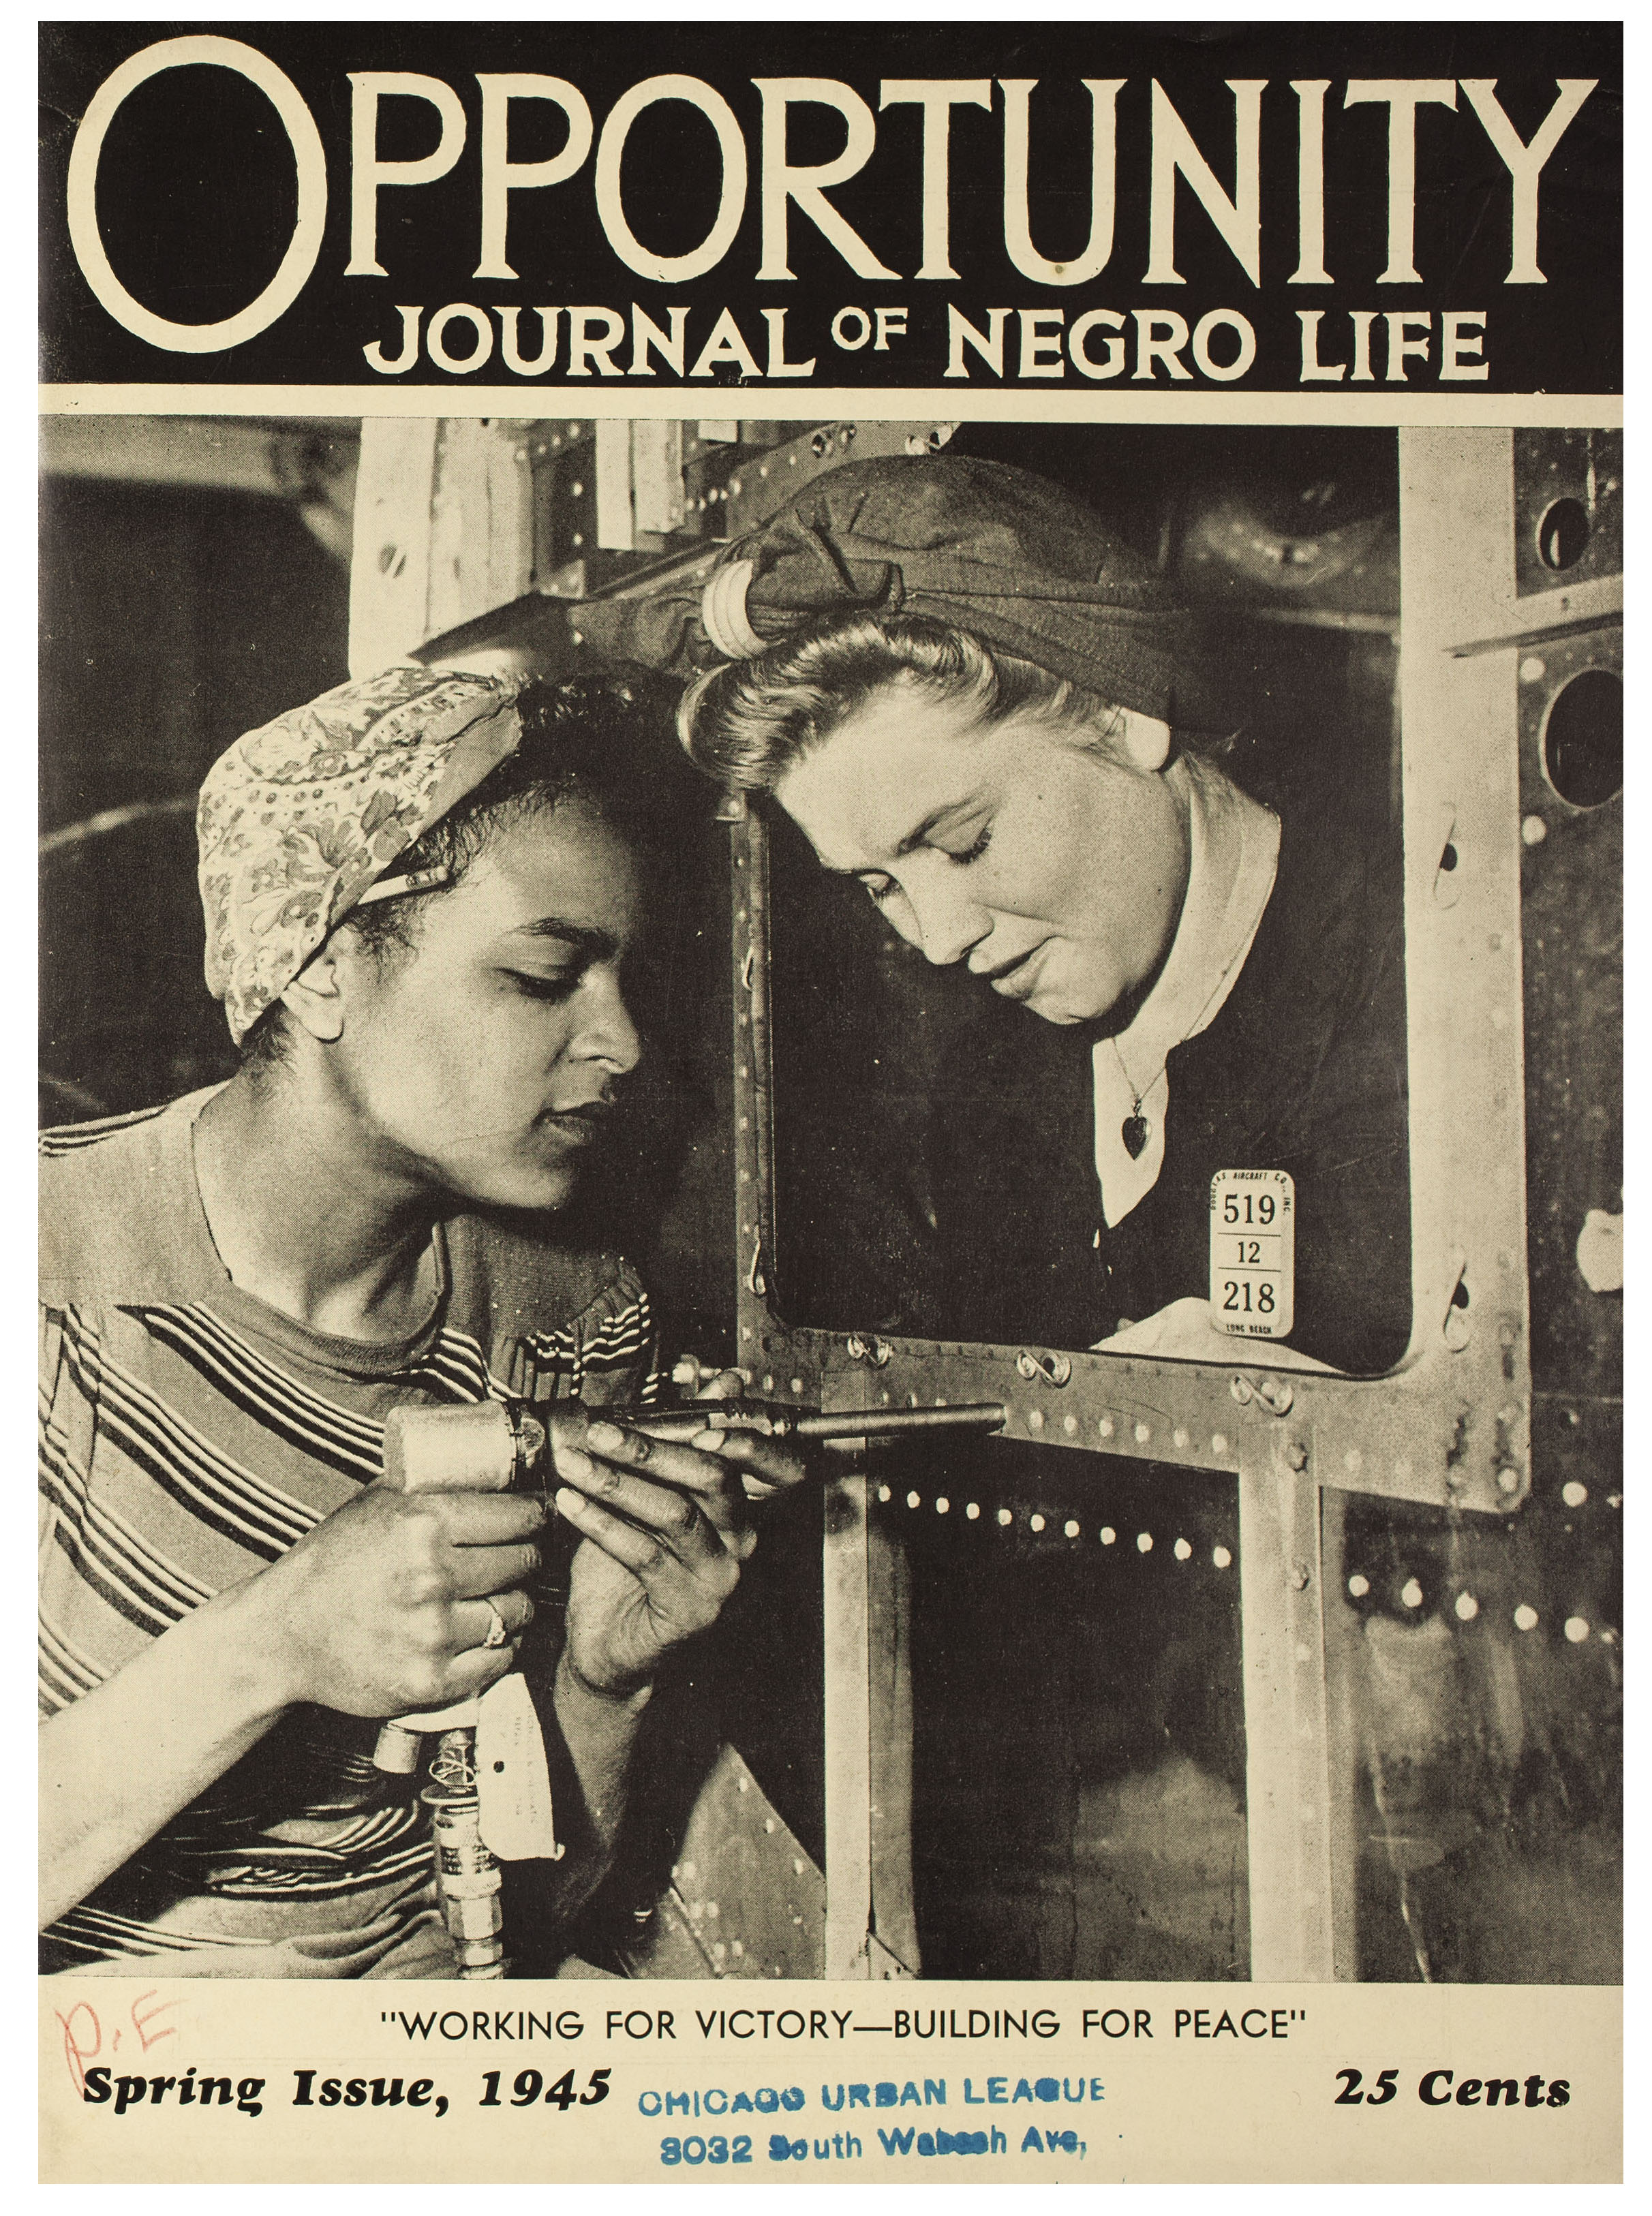 Opportunity Journal of Negro Life